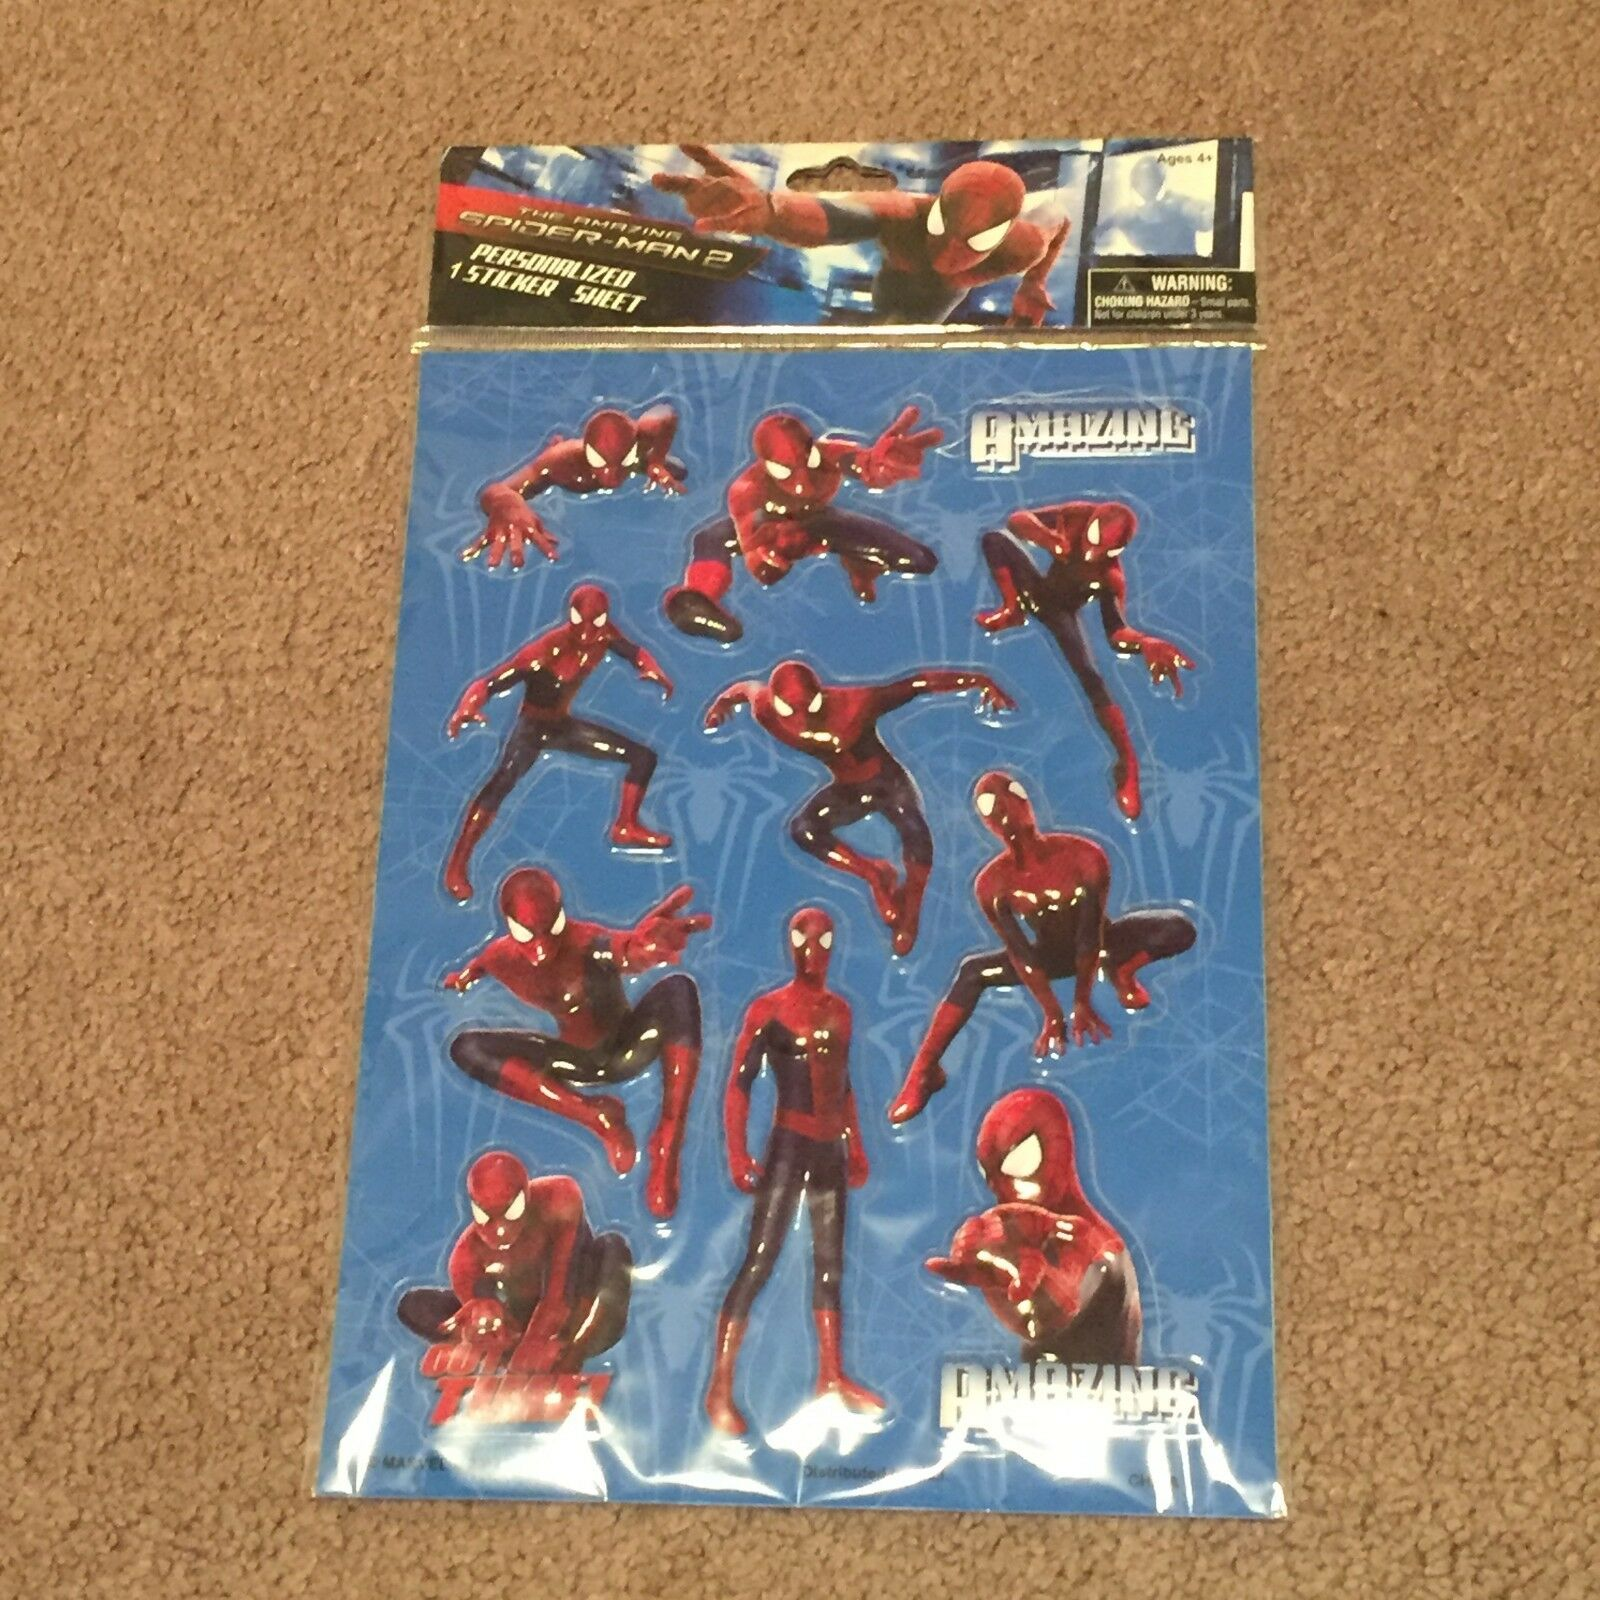 Marvel The Amazing Spider-Man 2 Stickers (Toys, Collectibles, 2014) Brand New